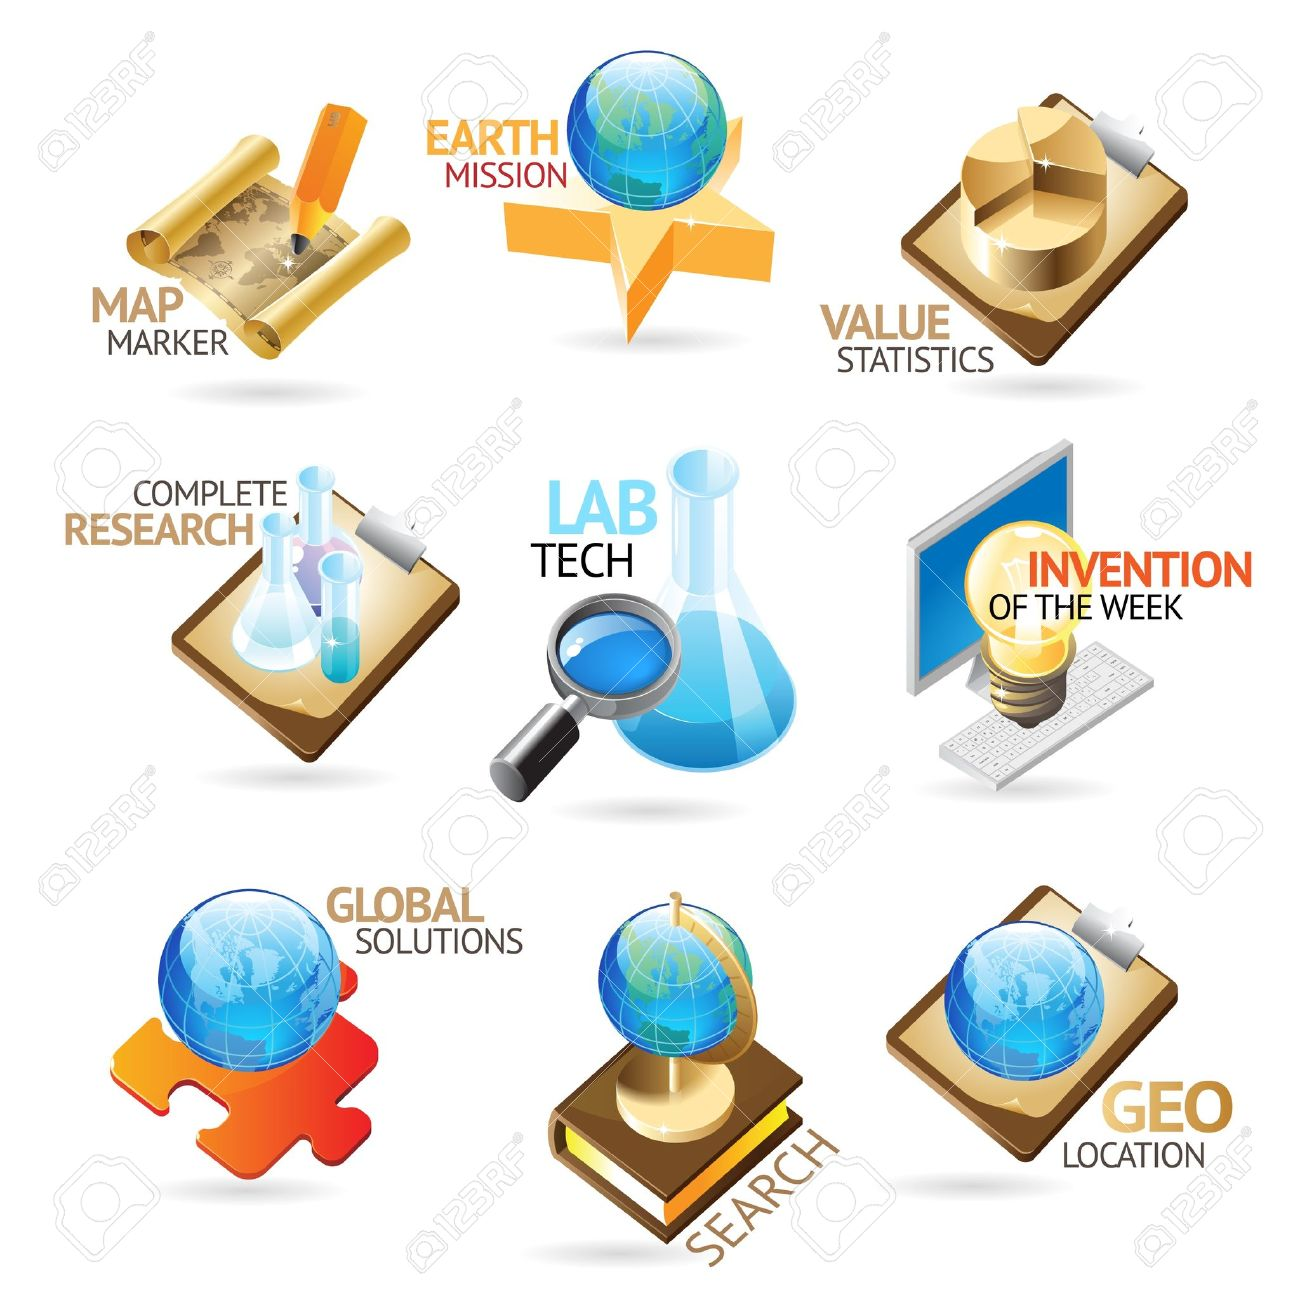 Science and technology icons. Heading concepts for document, article or website. Vector illustration. Stock Vector - 10893085